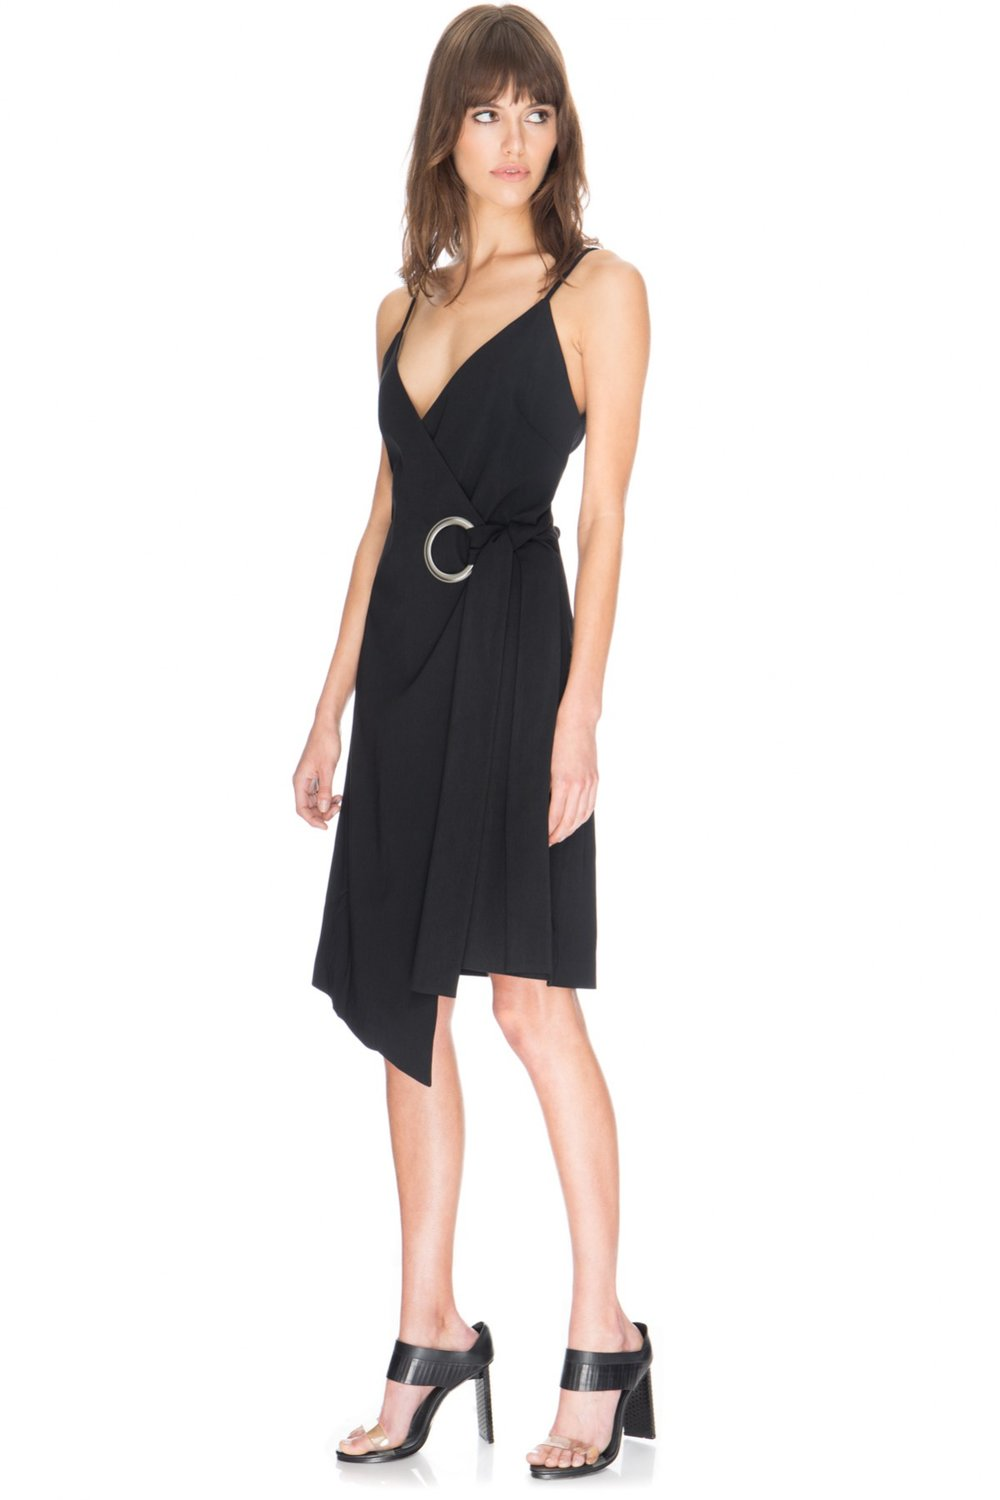 onthelinedress-black-6-edit-edit-edit.jpg